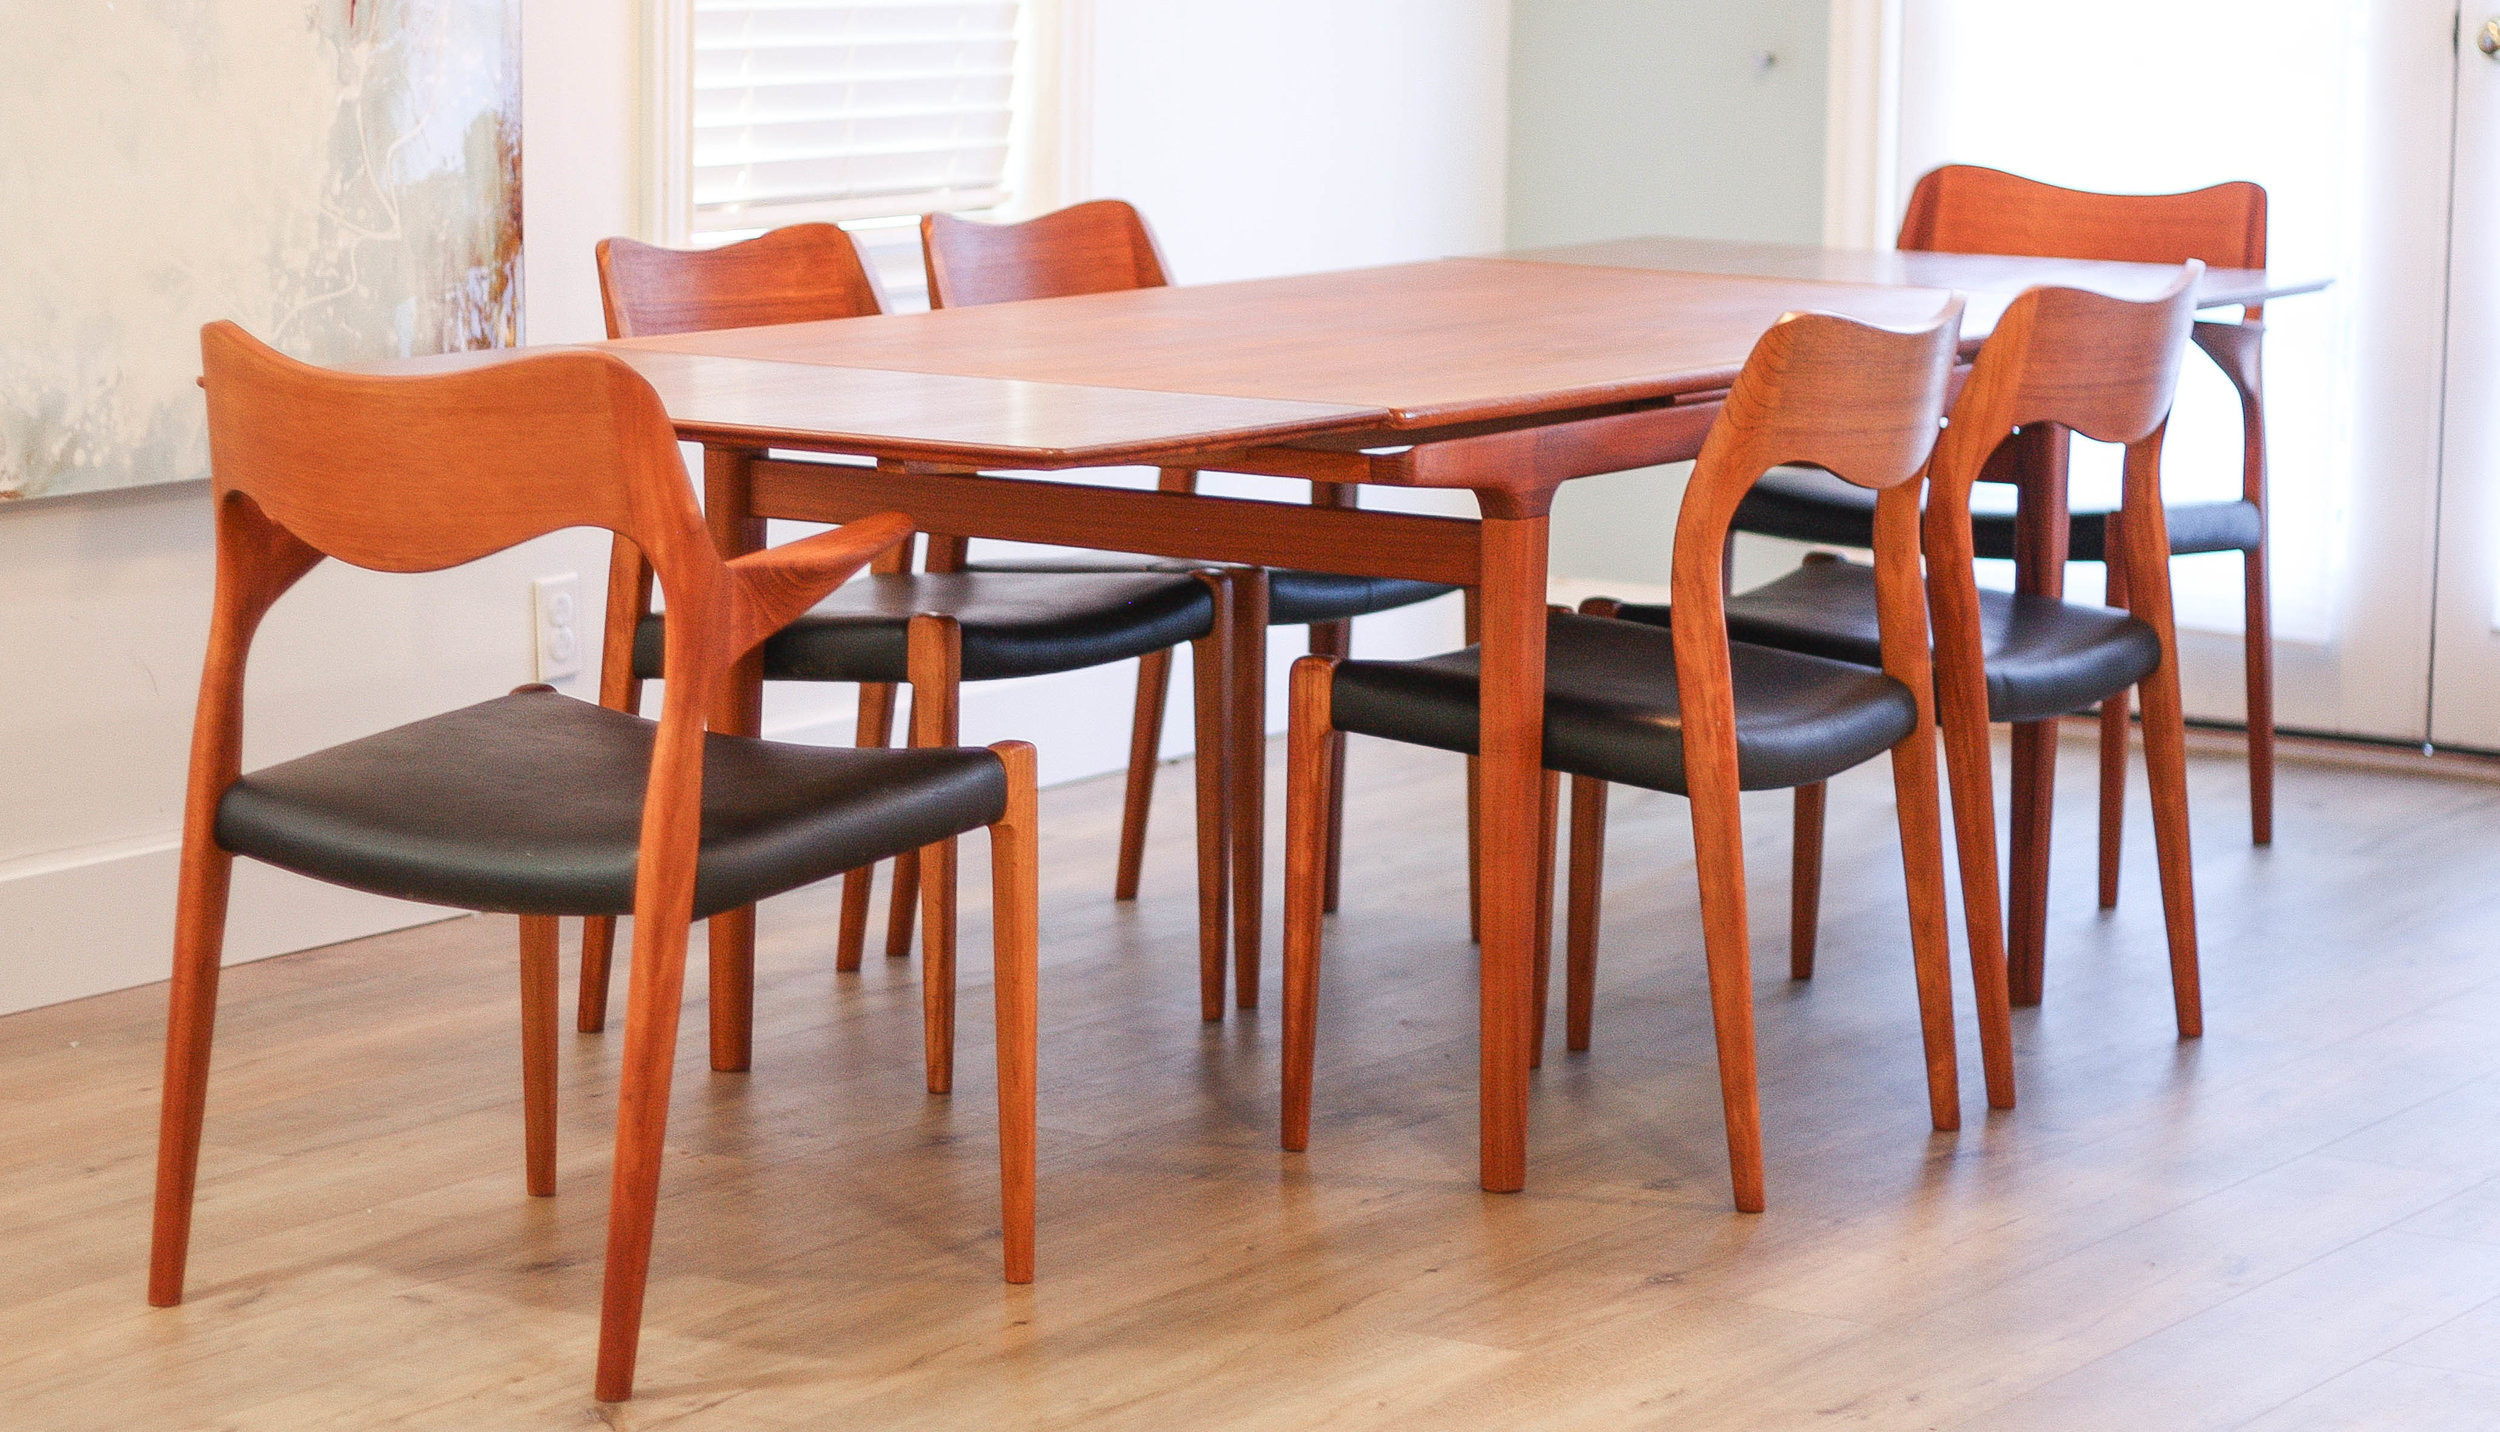 Dining Table Seating 10 Johannes Andersen Teak Extension Dining Table Seats 10 Sold